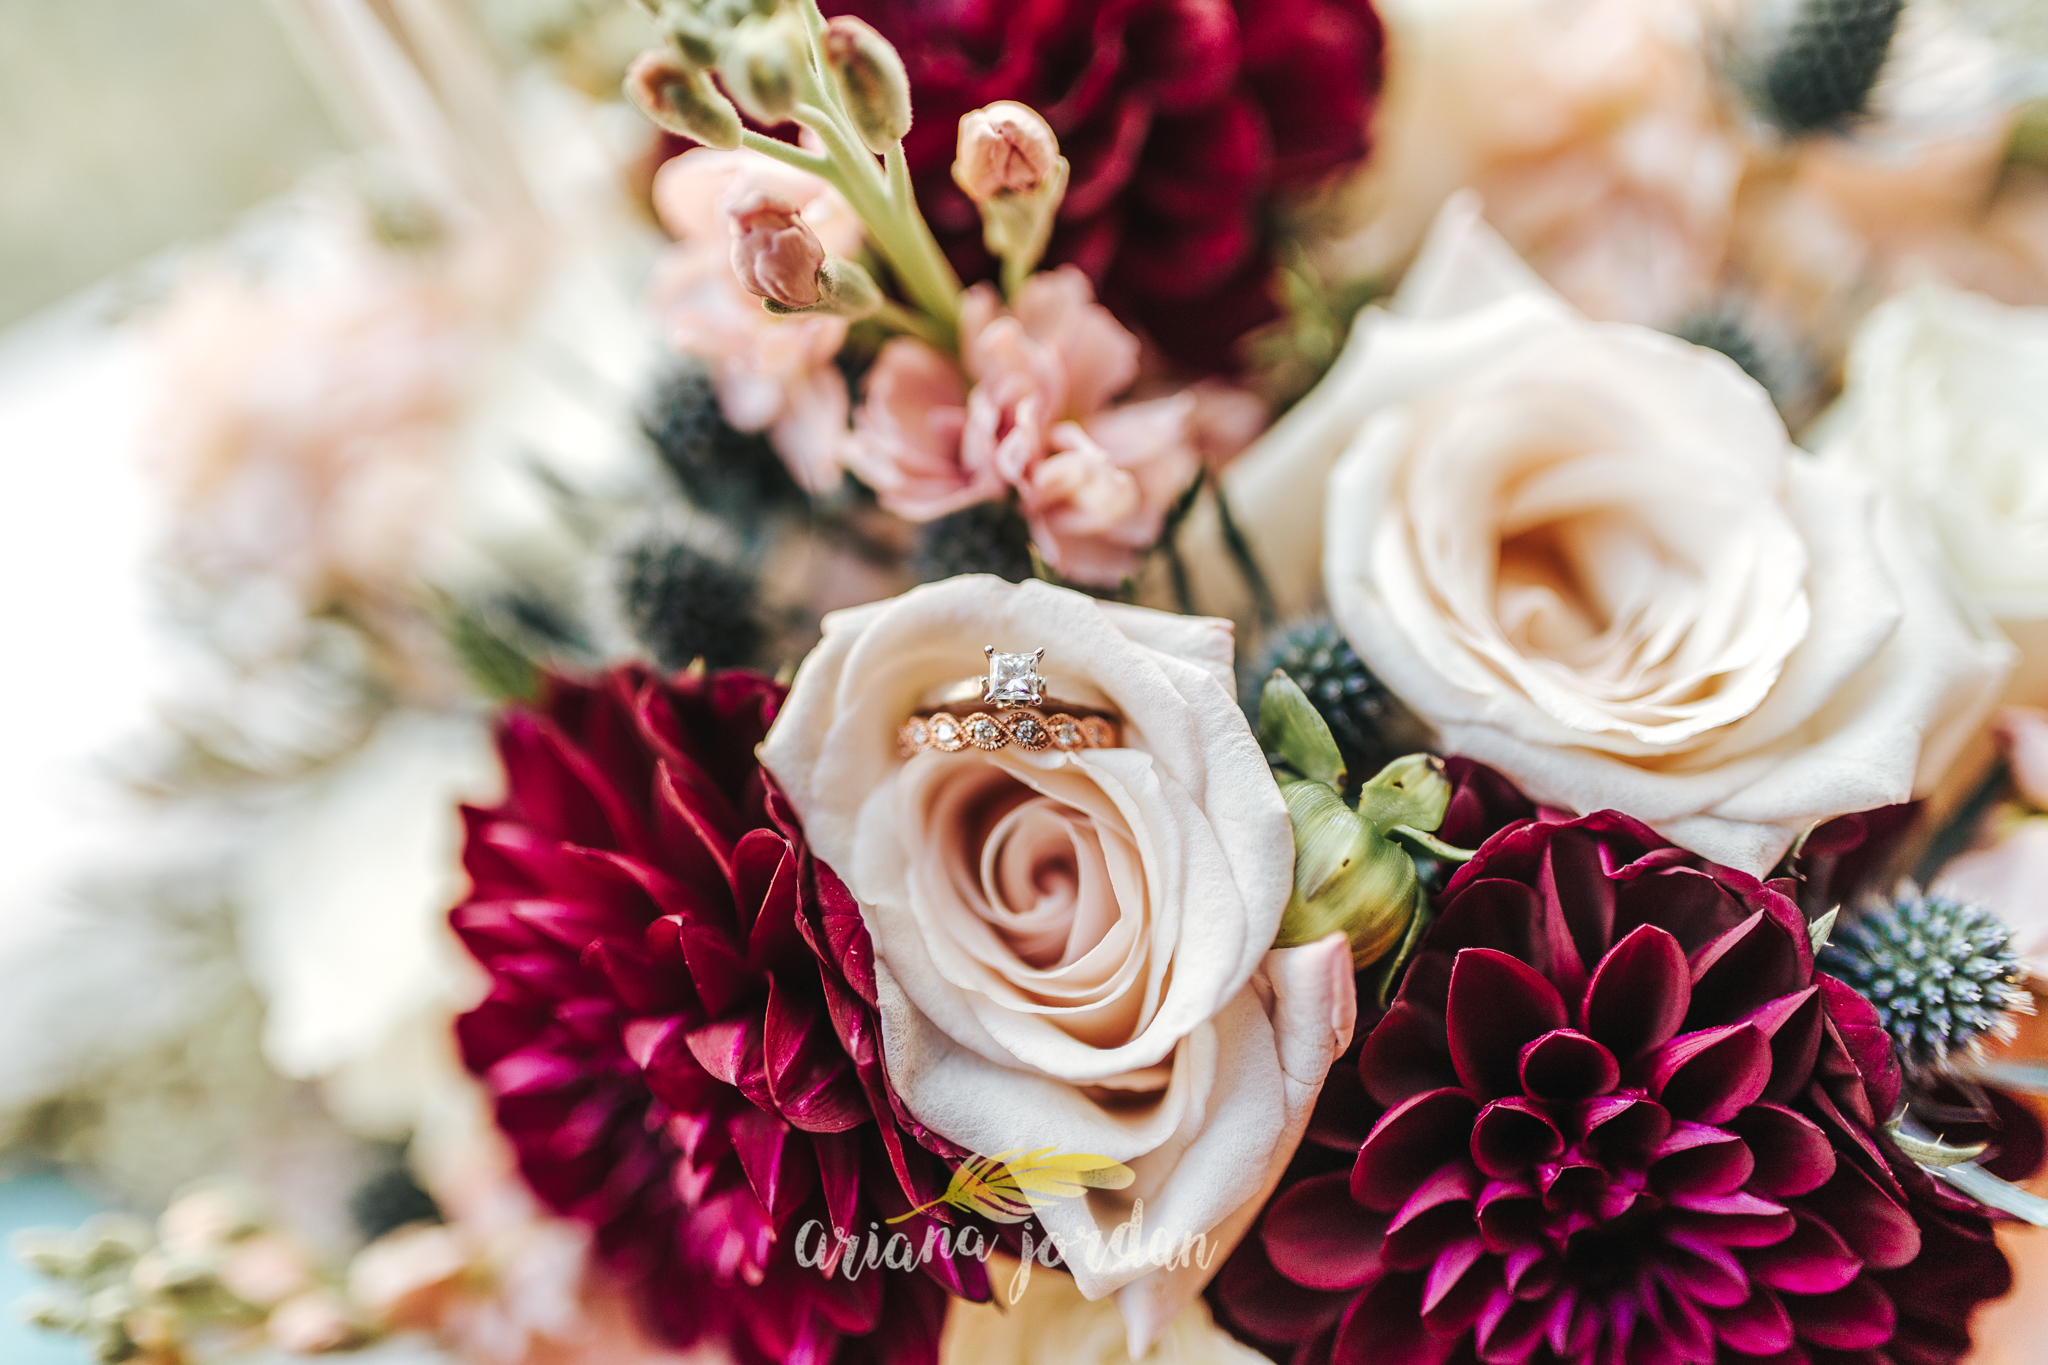 013 Ariana Jordan Photography - Ashley Inn Wedding Photographer 9302.jpg